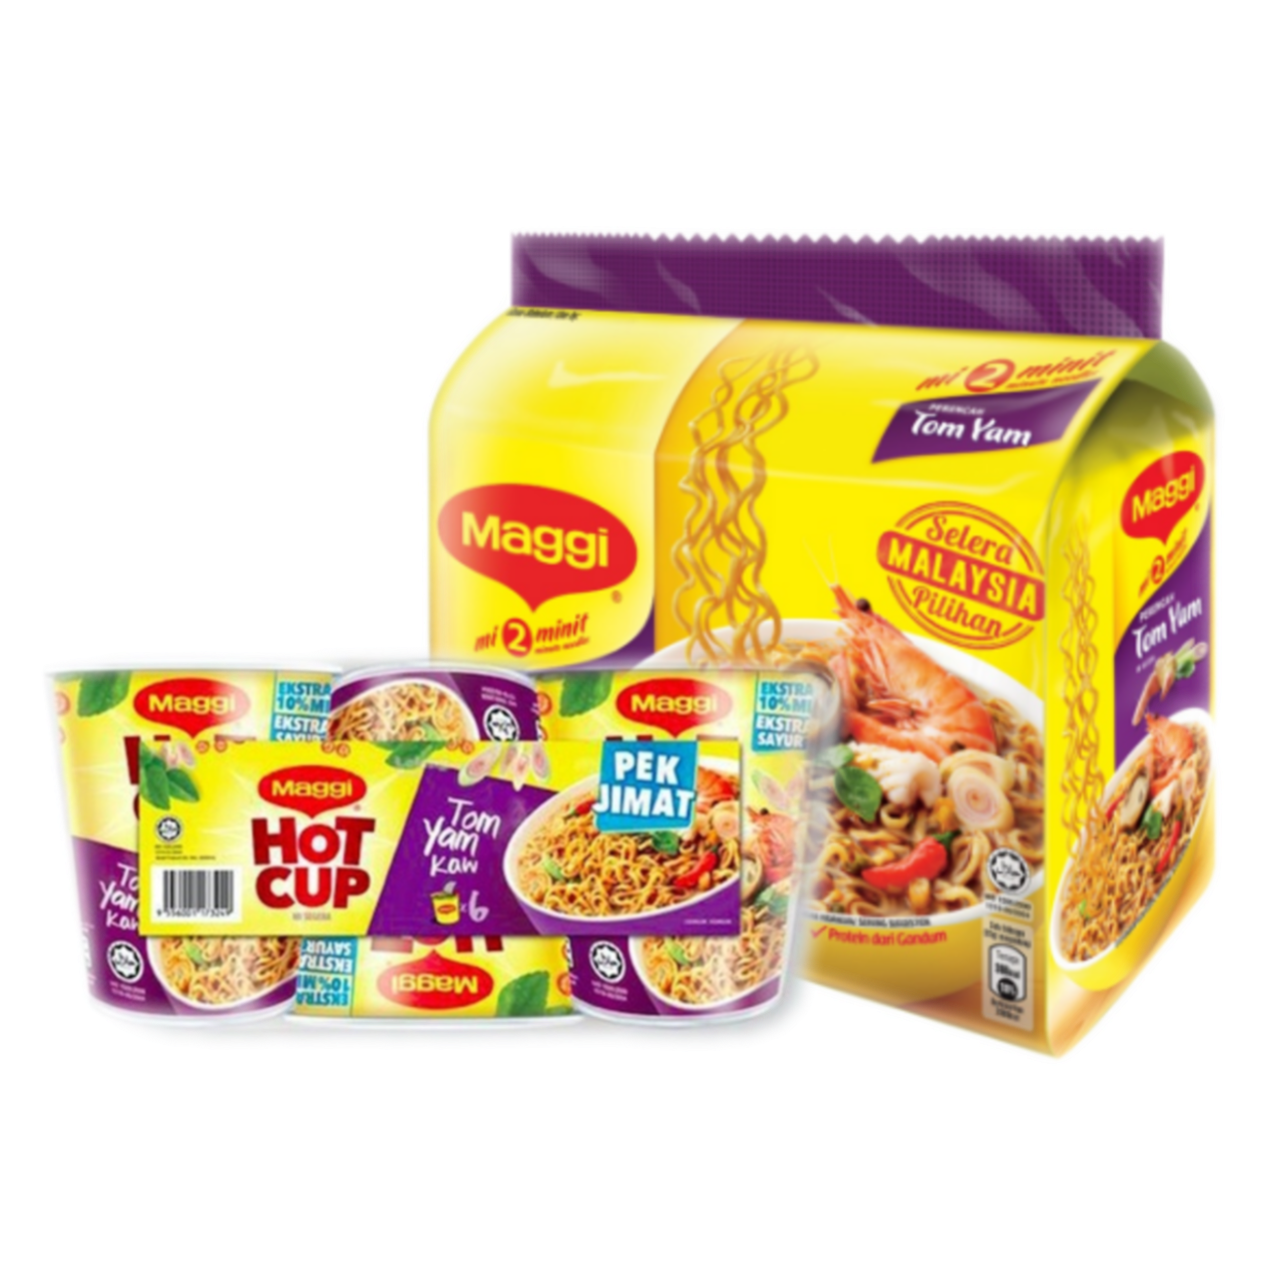 Malaysia Wholesale Instant Spicy Tom Yam Taste Noodles 5 x 80g